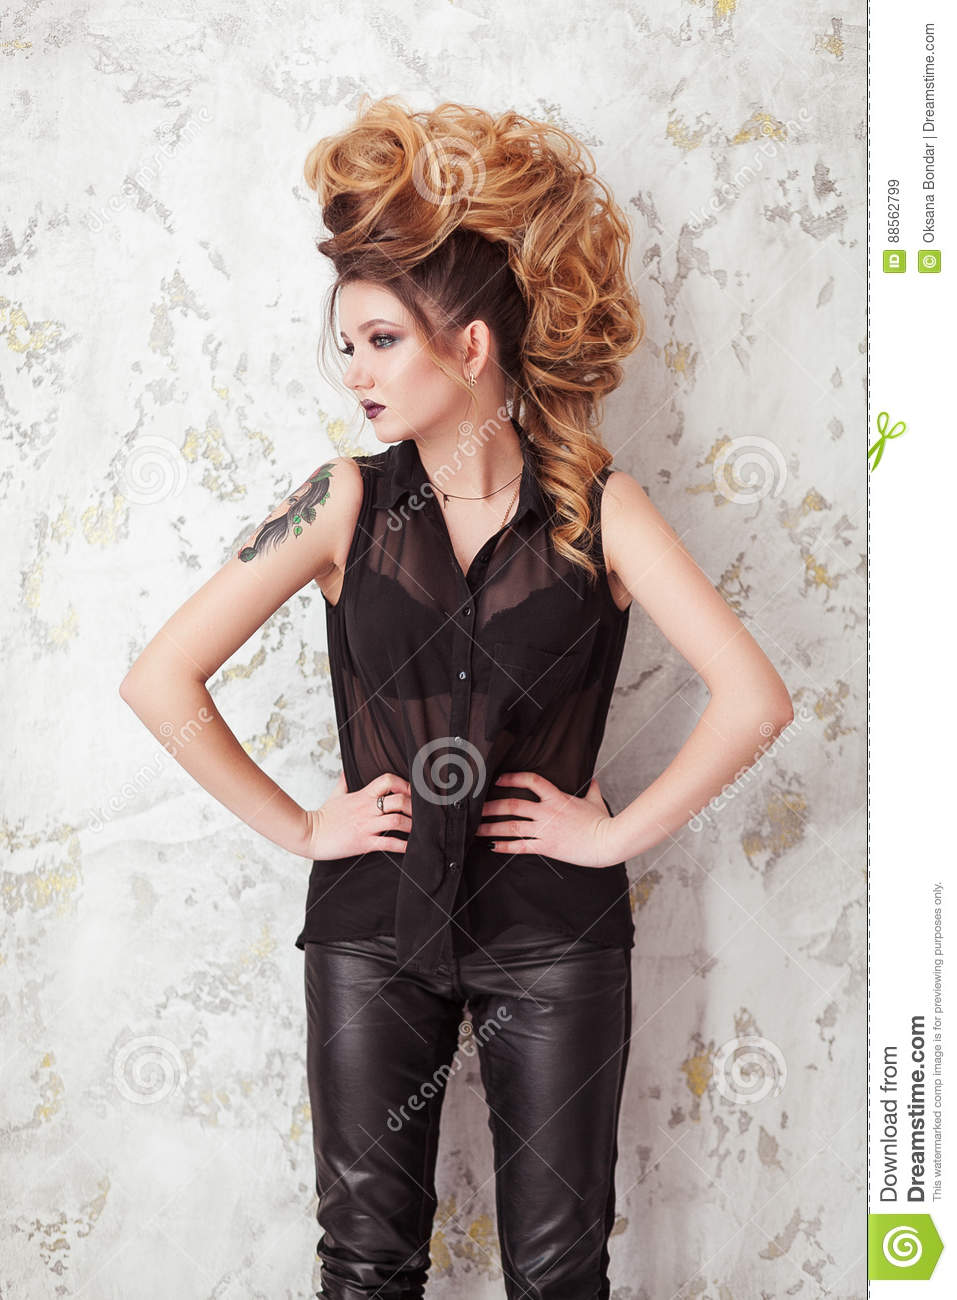 Fashion Shiny Makeup Beauty Woman With Mohawk Hairstyle Blonde